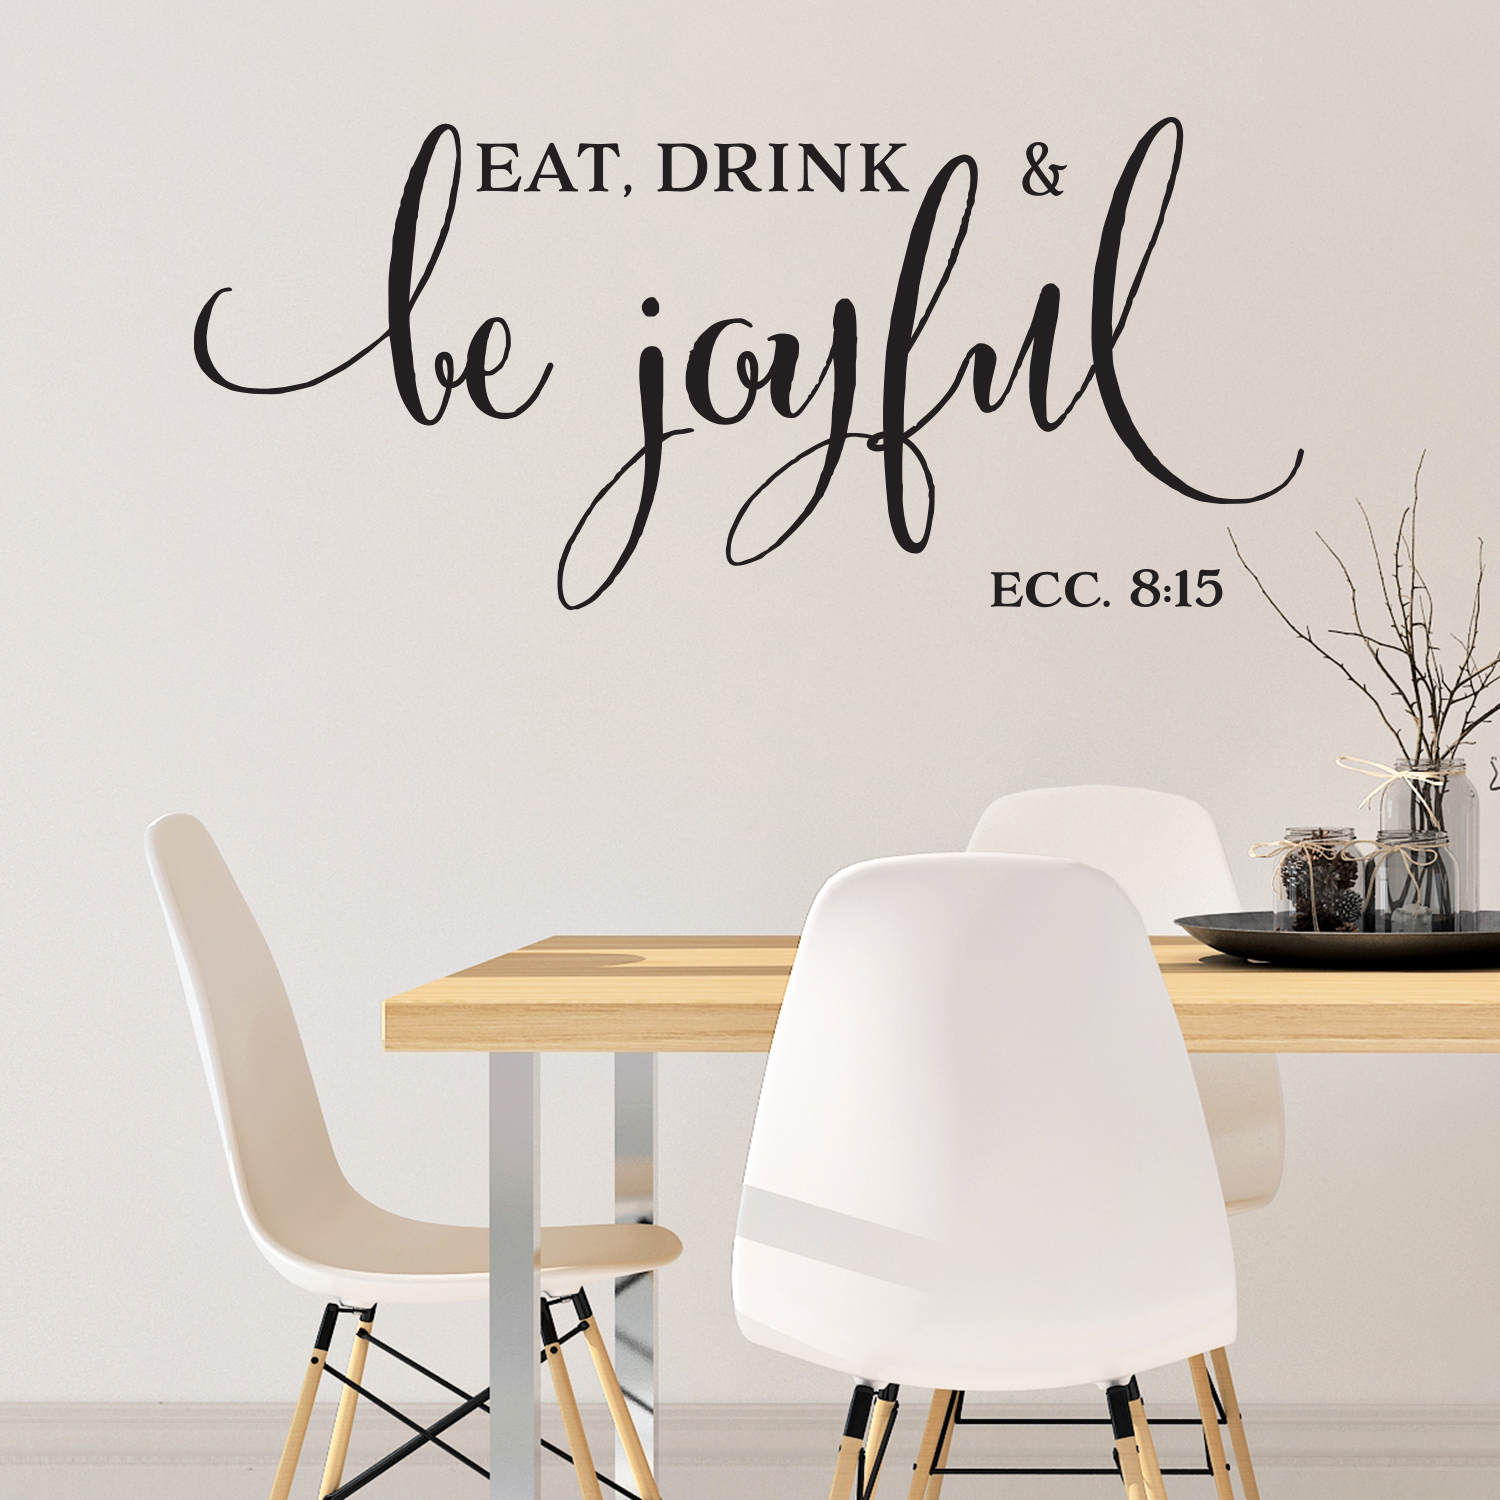 Ecclesiastes 8v15 Vinyl Wall Decal 3 Eat Drink And Be Joyful